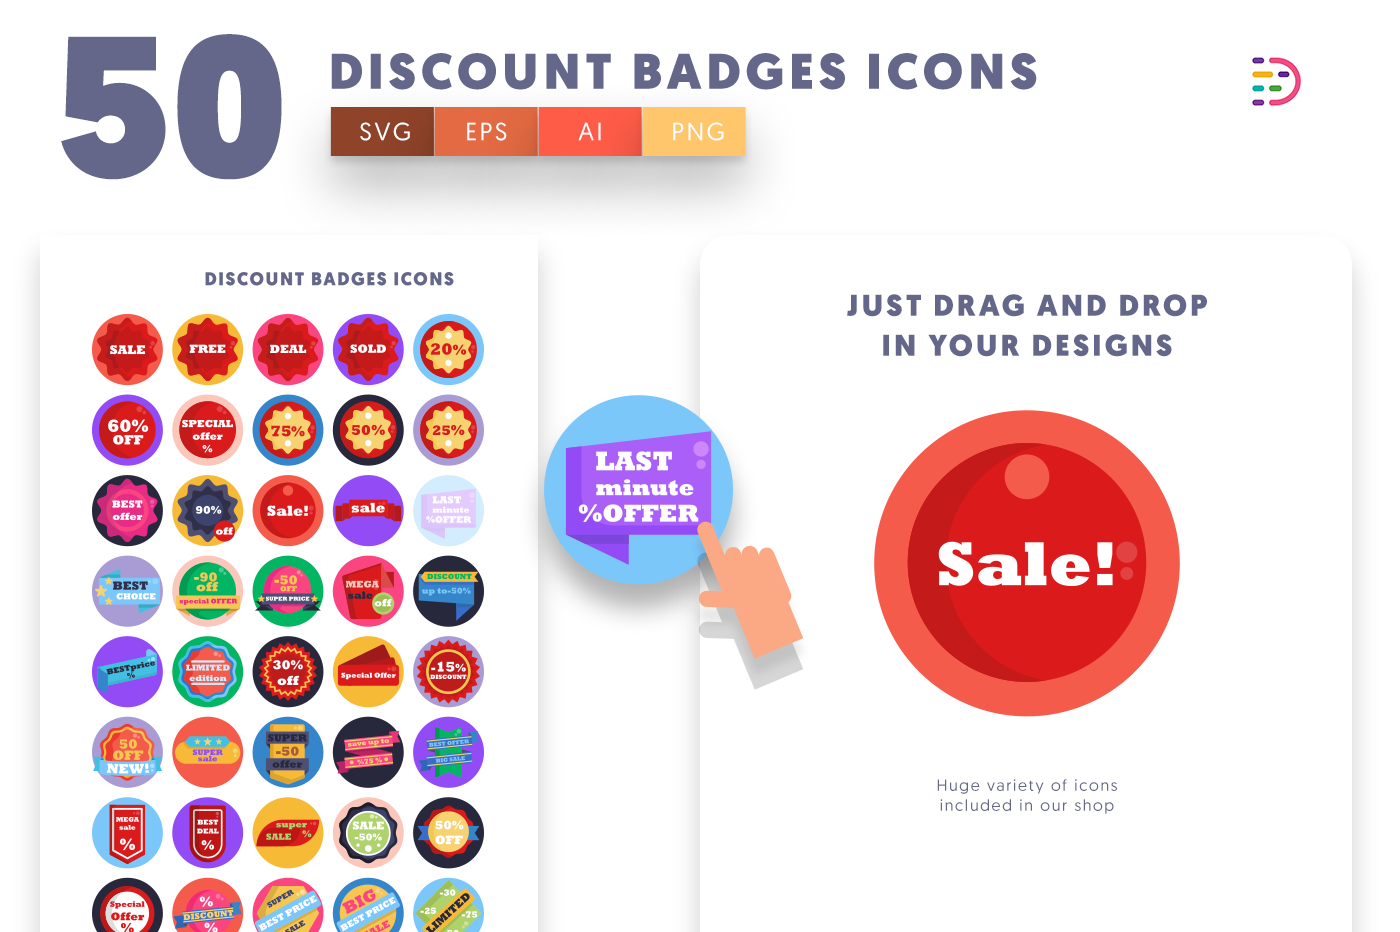 Drag and drop vector 50 Discount Badges Icons